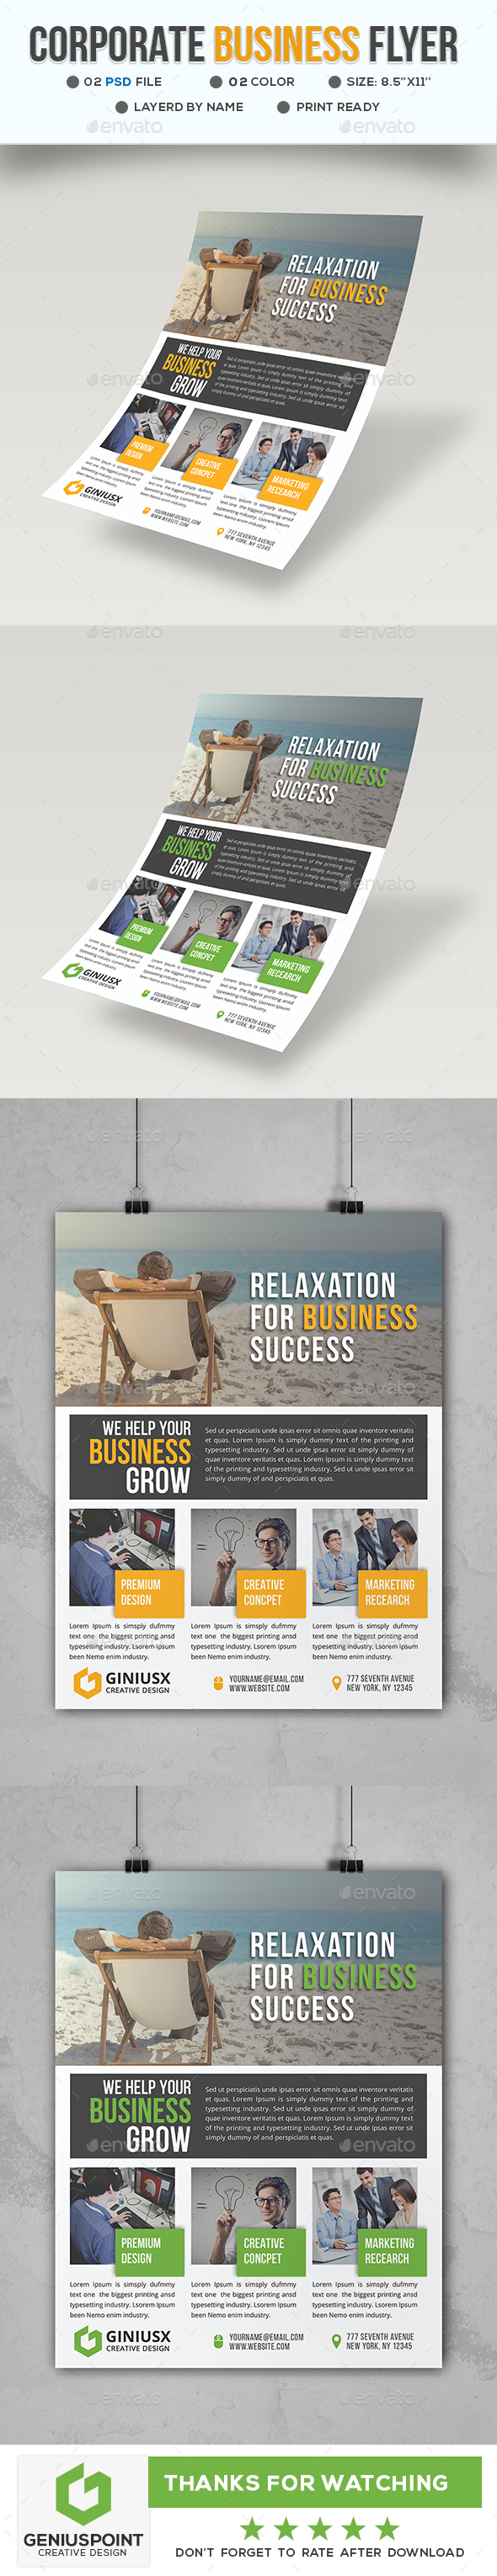 GraphicRiver Corporate Business Flyer 21149149